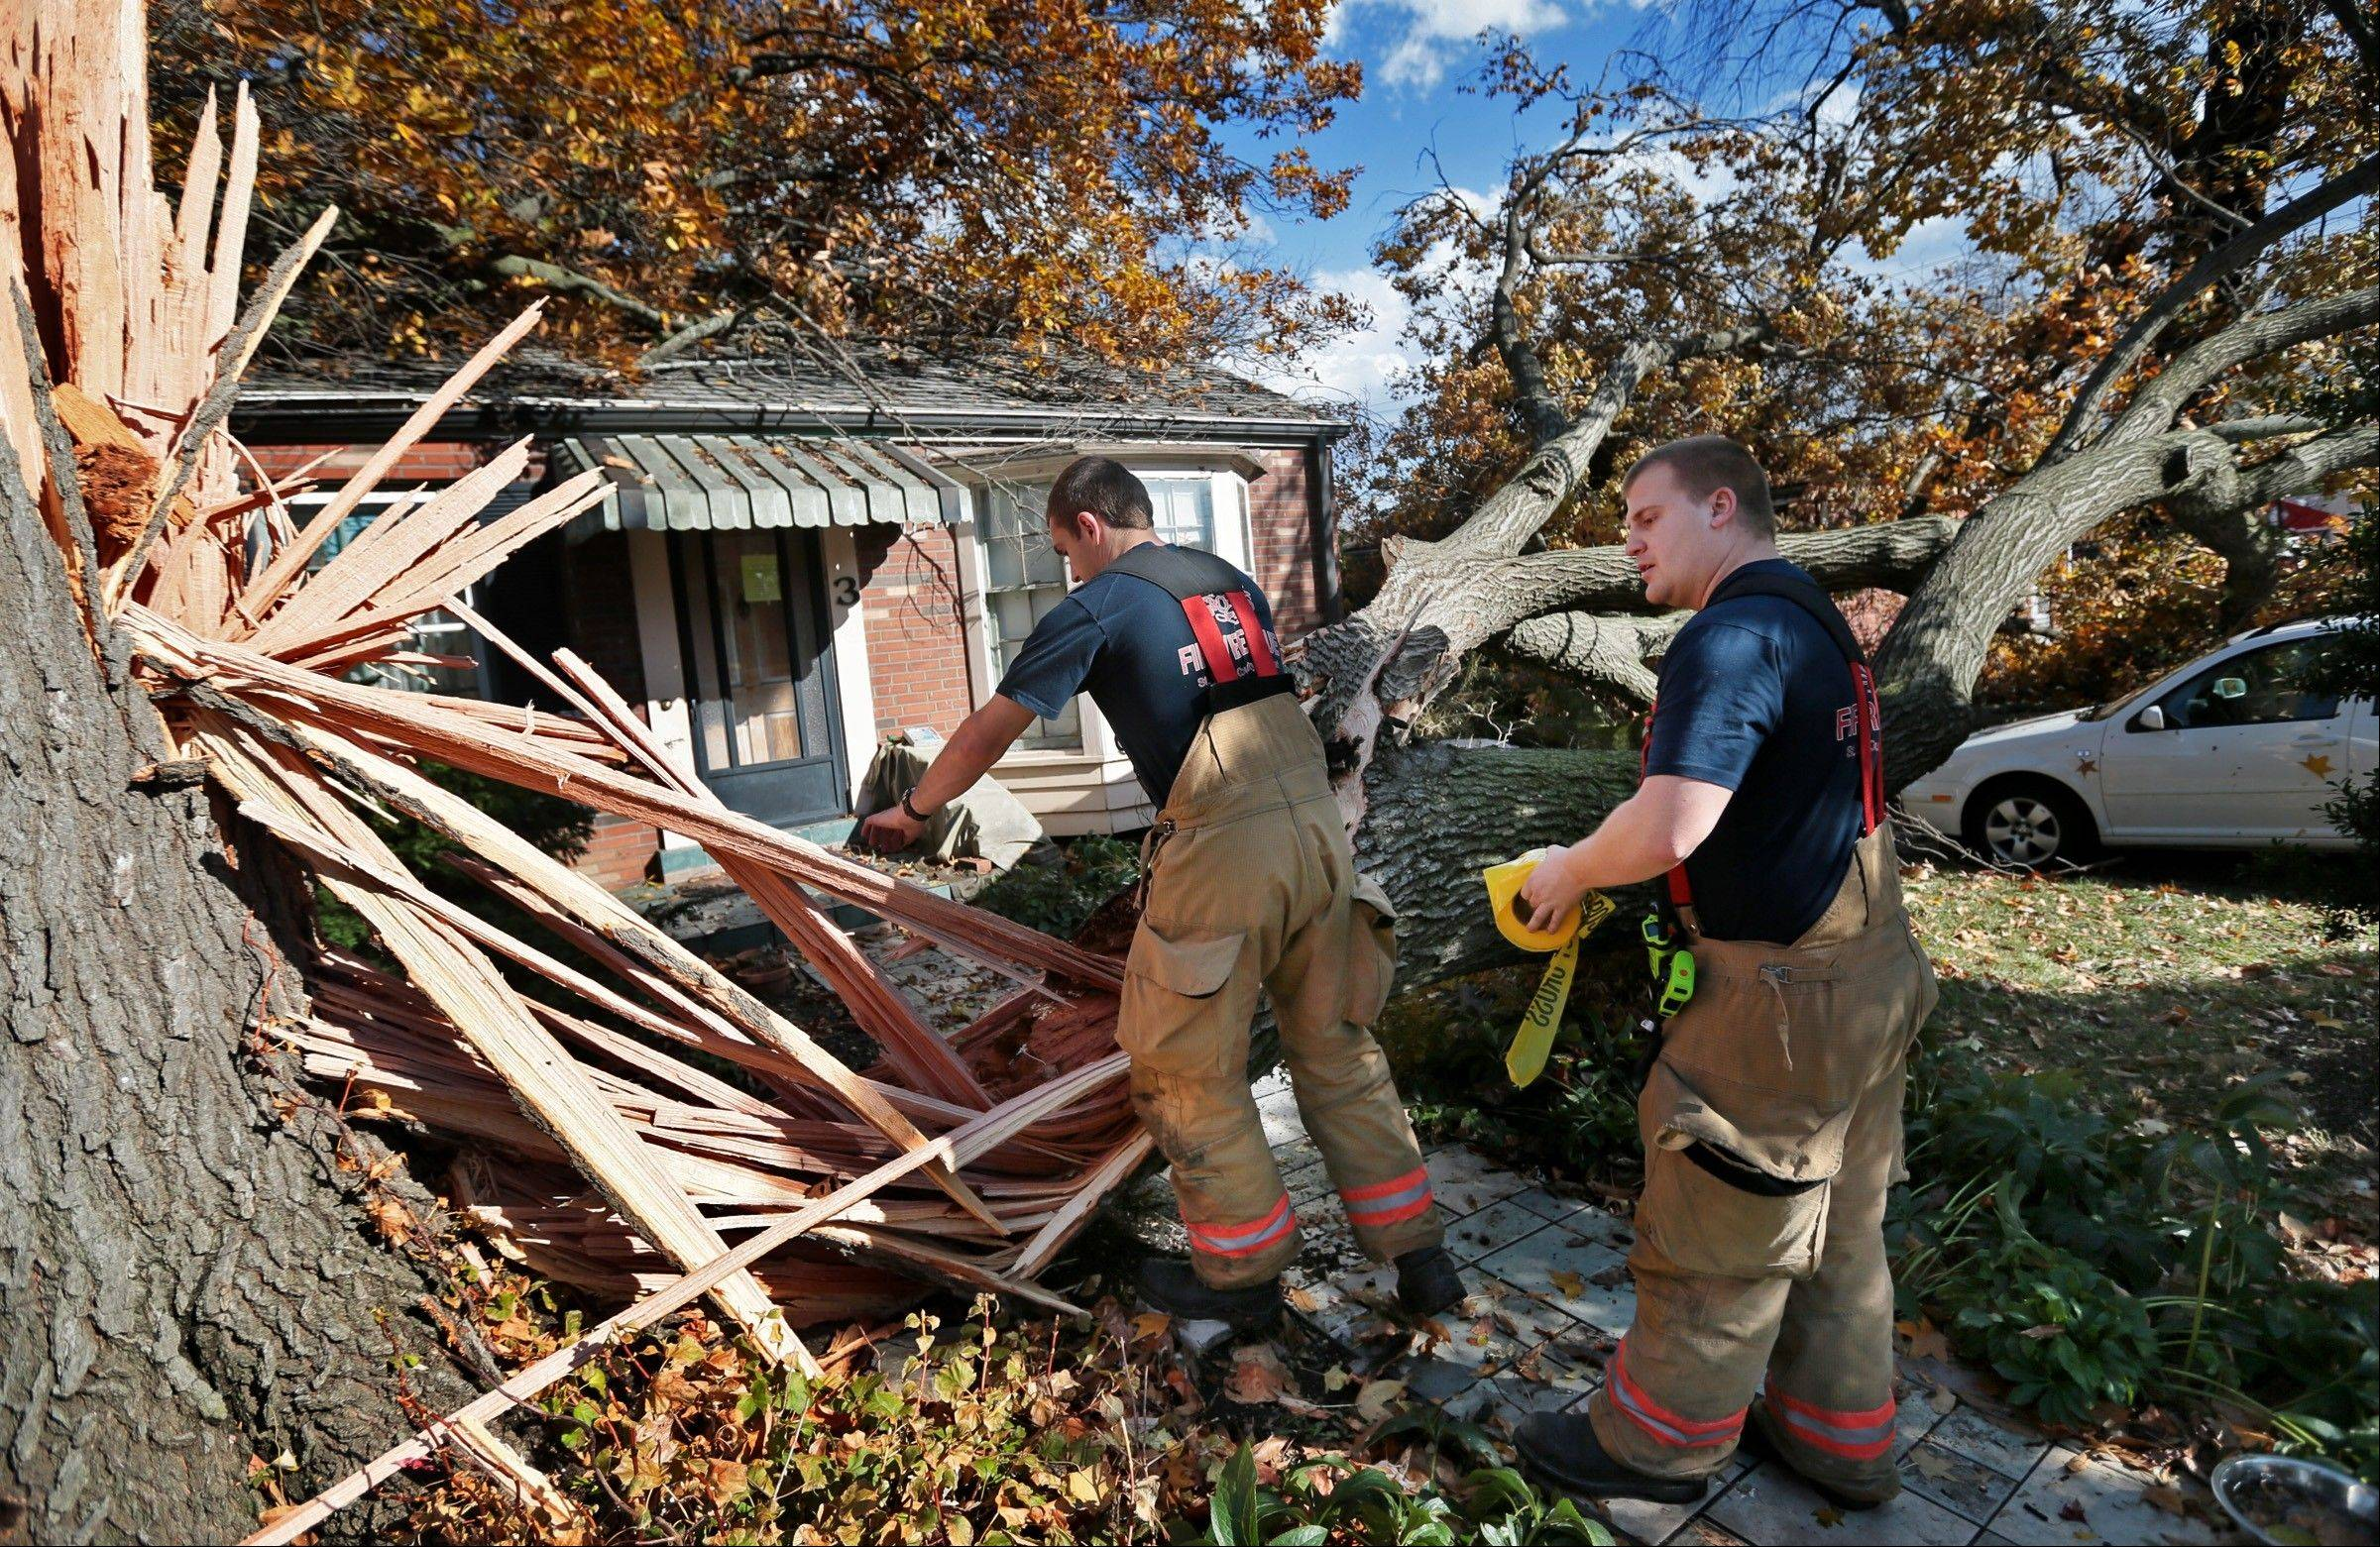 Webster Groves firefighters Chris Manita, center, and Matt Grossenhieder climb over a tree that fell on a house on Clydehurst Drive in Webster Groves, Mo., Sunday, Nov. 17, 2013. The residents of the house were home at the time the tree fell but were not injured. Intense thunderstorms and tornadoes swept across a number of Midwestern states Sunday, causing damage in several central Illinois communities while sending people to their basements for shelter and even prompting officials at Soldier Field in Chicago to evacuate the stands and delay the Bears game.